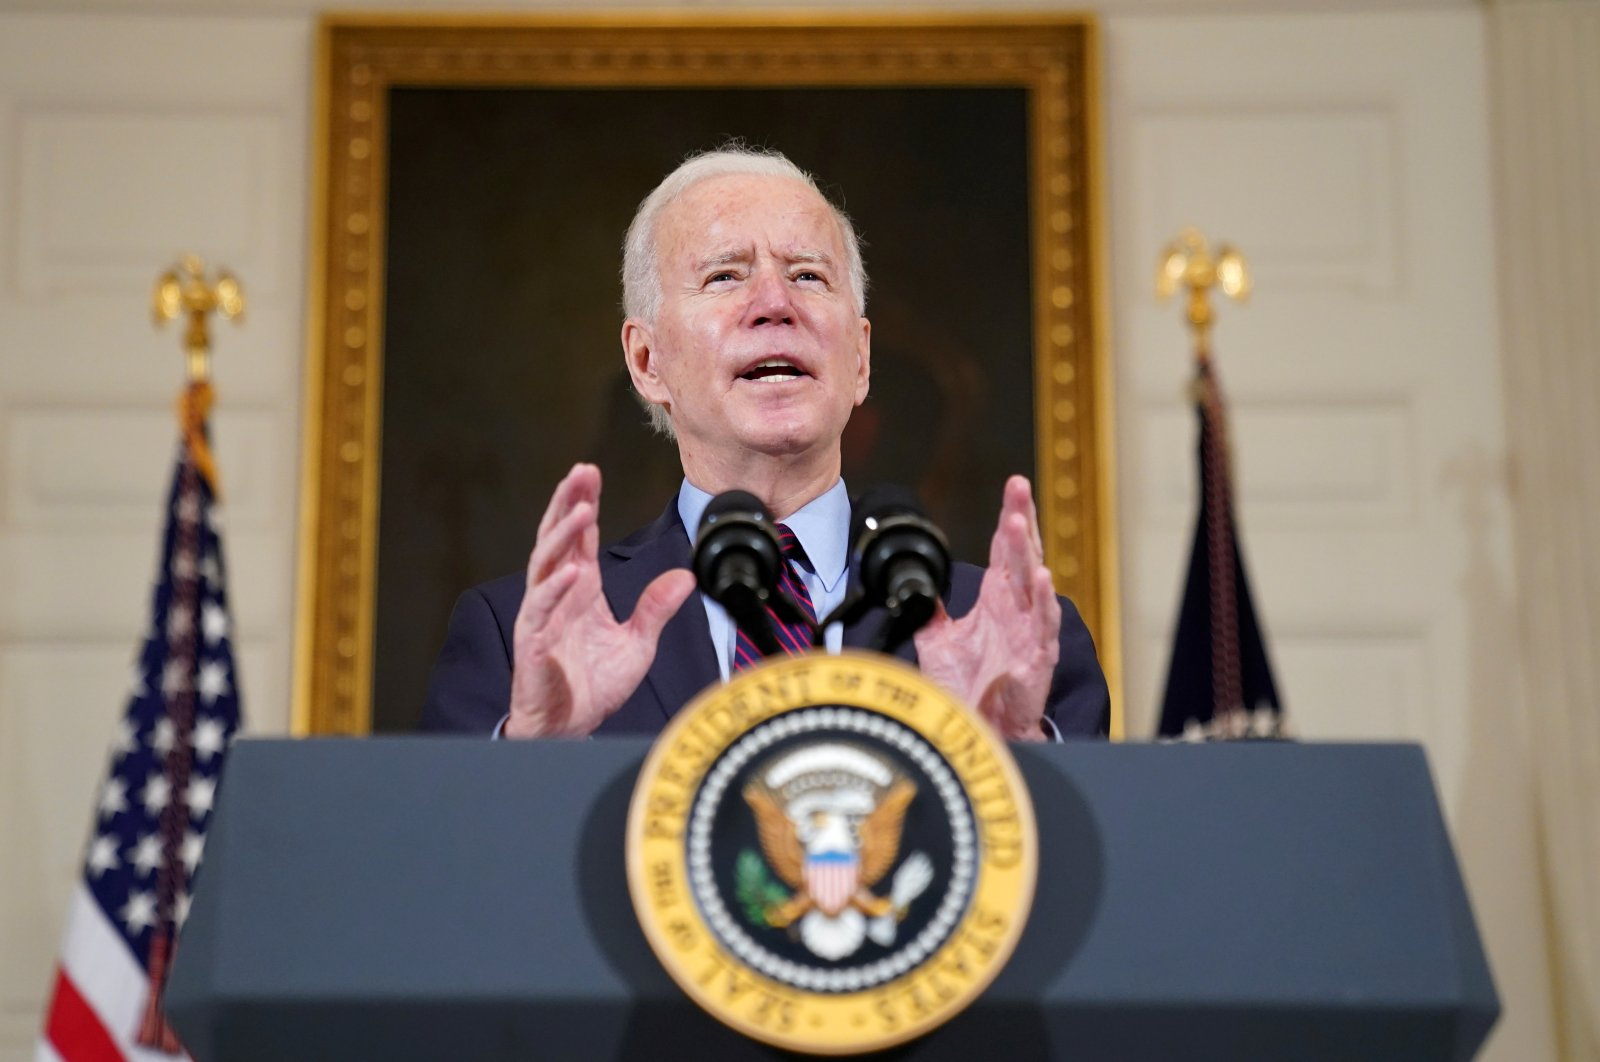 U.S. President Joe Biden delivers remarks in the State Dining Room at the White House in Washington, U.S., Feb. 5, 2021. (Reuters Photo)